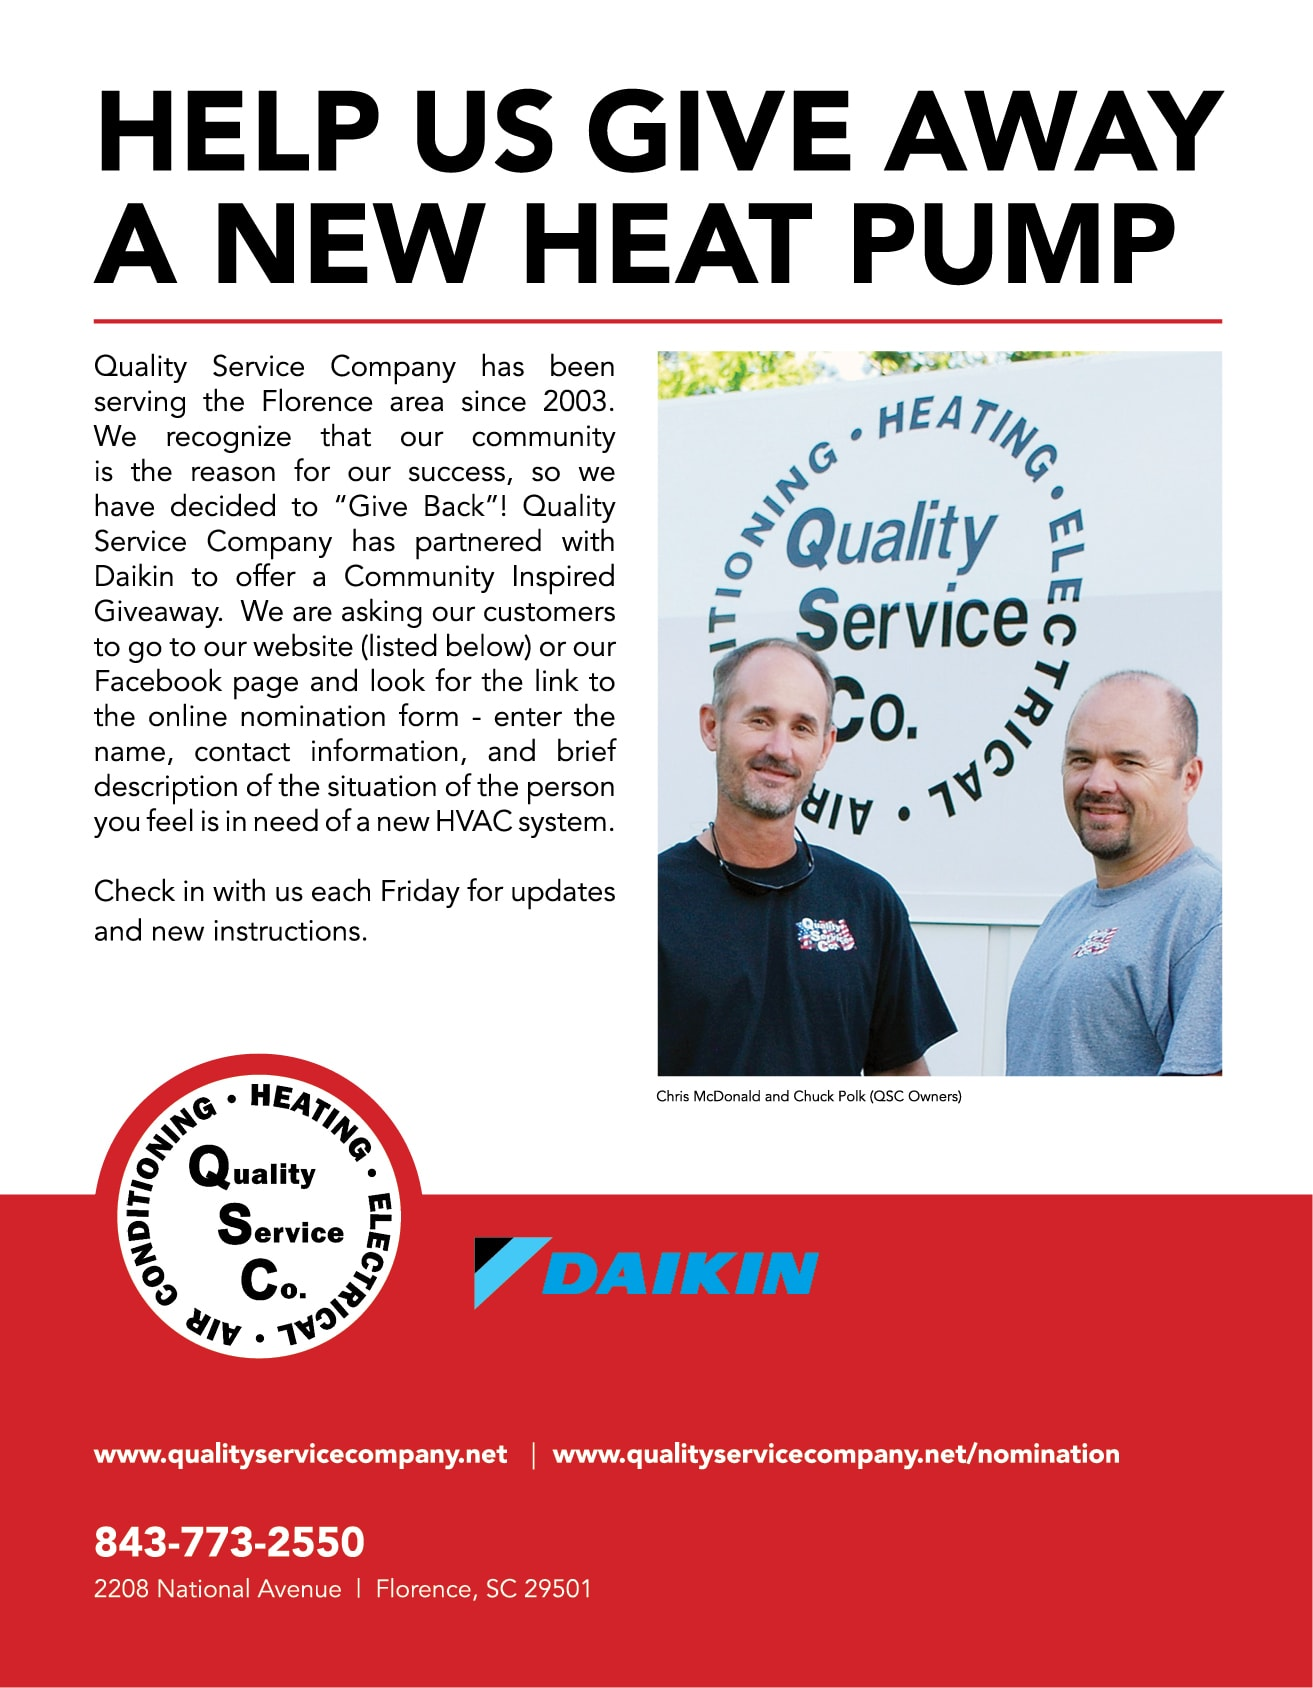 Help us give away a new heat pump.